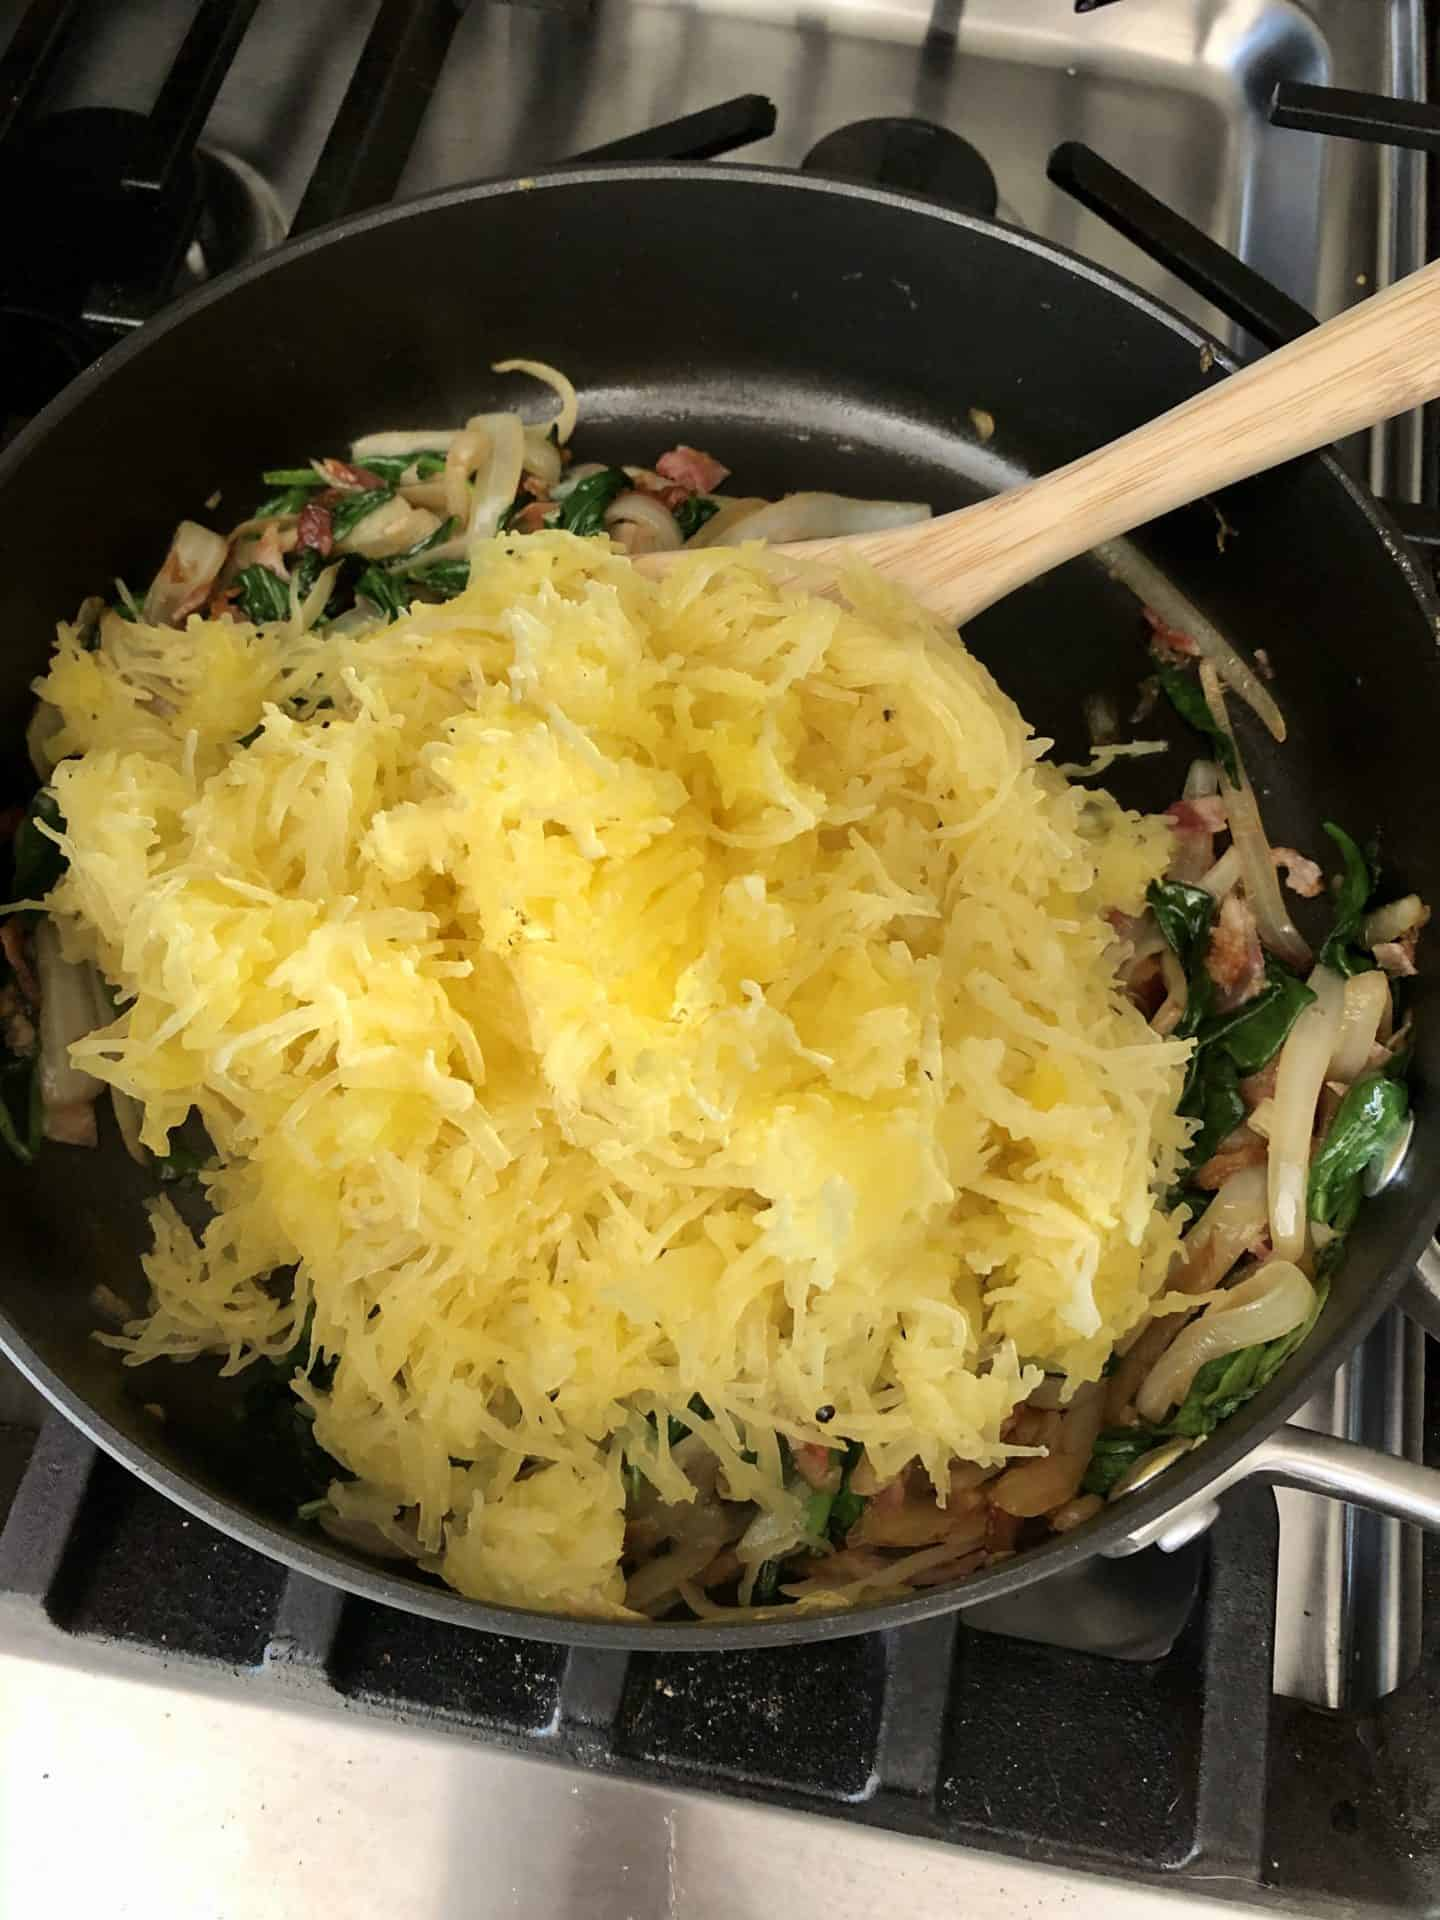 Spaghetti Squash added to pan with spinach and onions